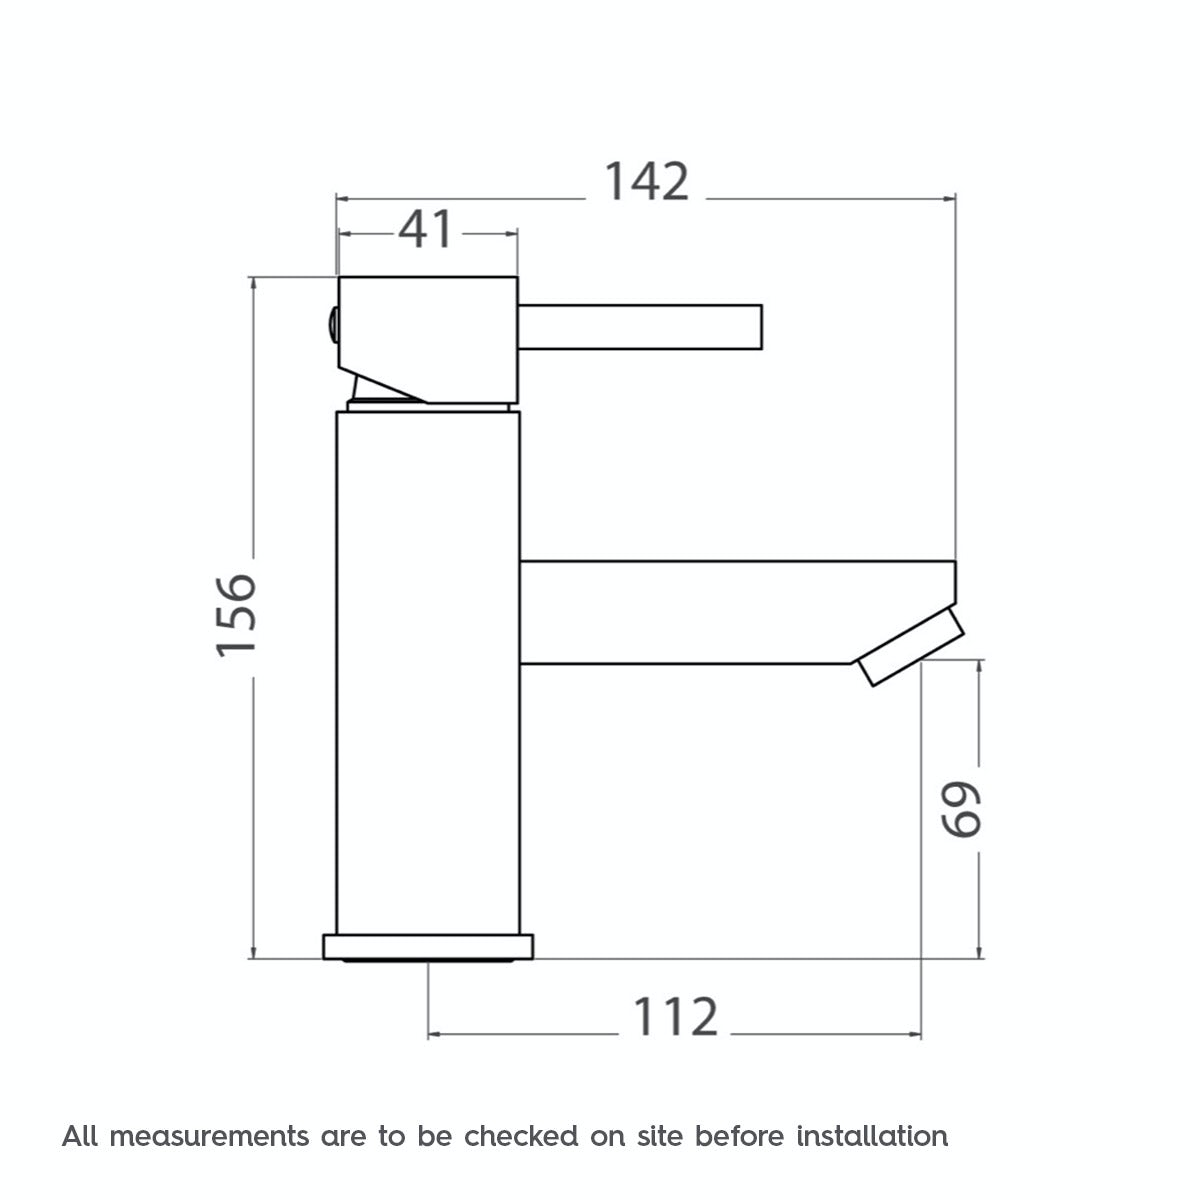 Dimensions for Cubik basin mixer tap